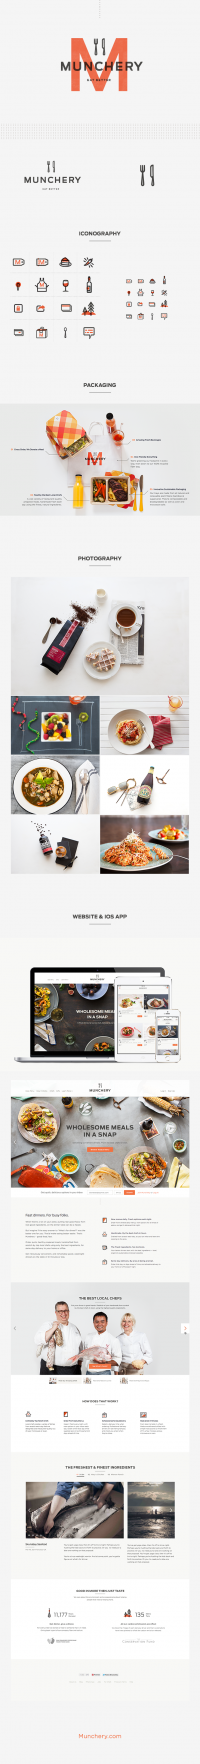 Munchery Redesign on Inspirationde